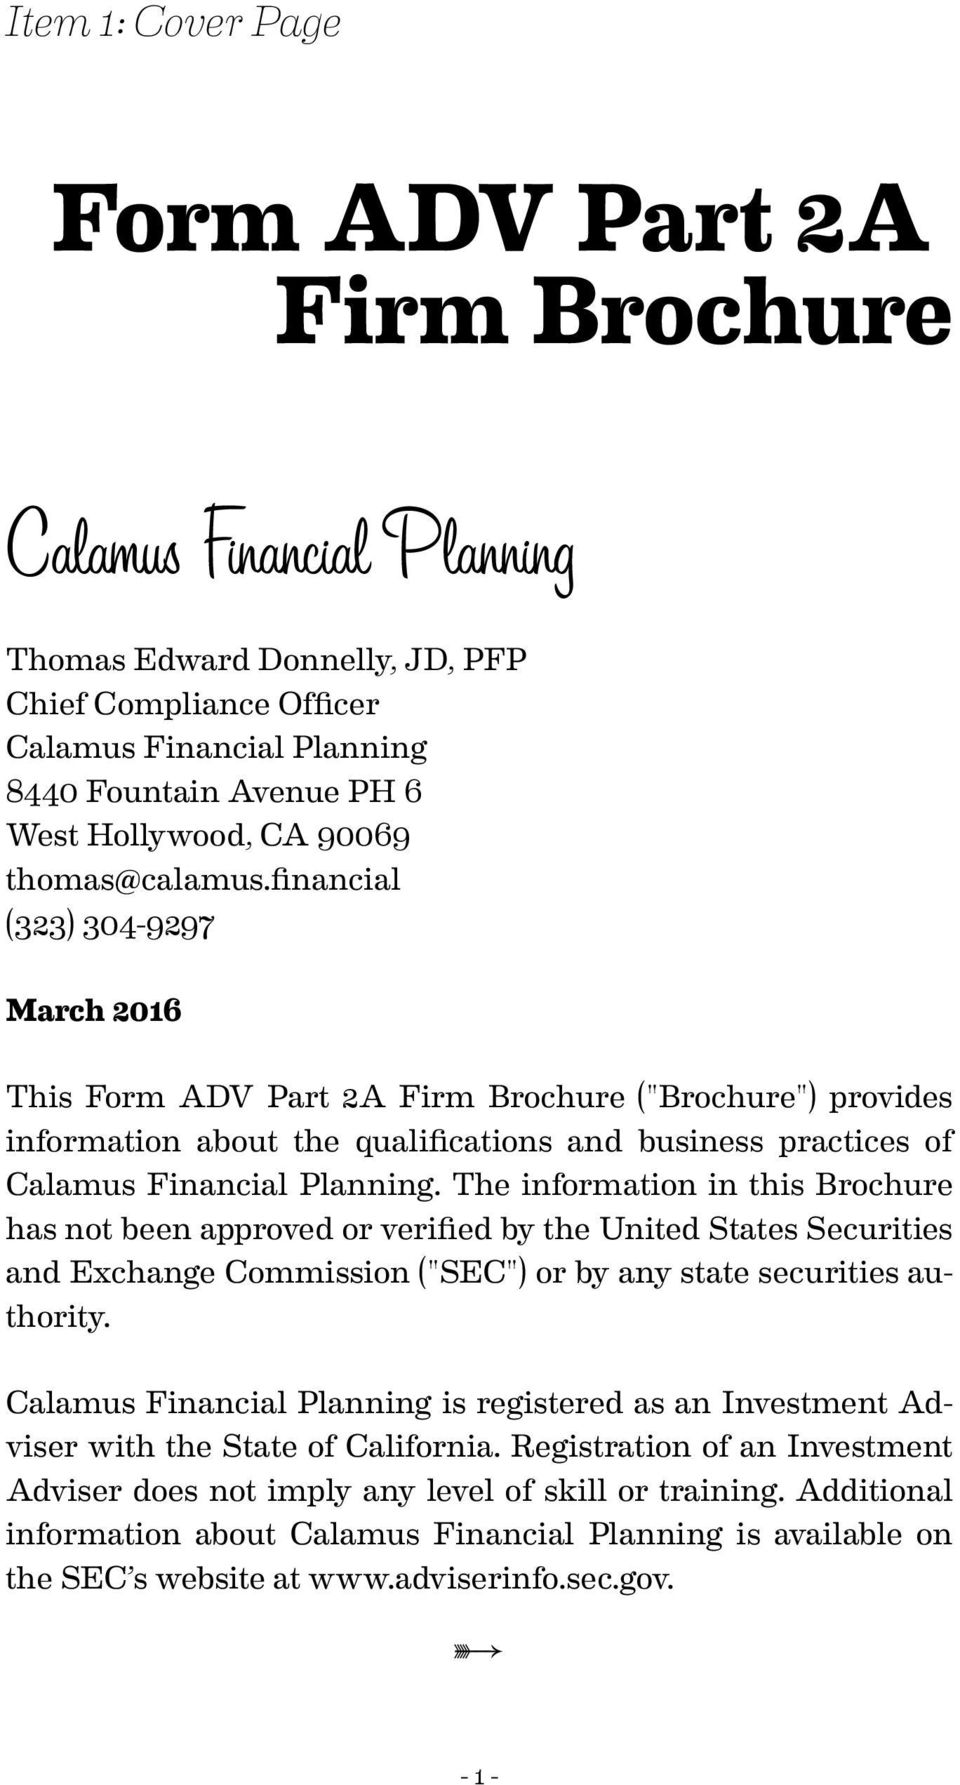 "financial (323) 304-9297 March 2016 This Form ADV Part 2A Firm Brochure (""Brochure"") provides information about the qualifications and business practices of Calamus Financial Planning."